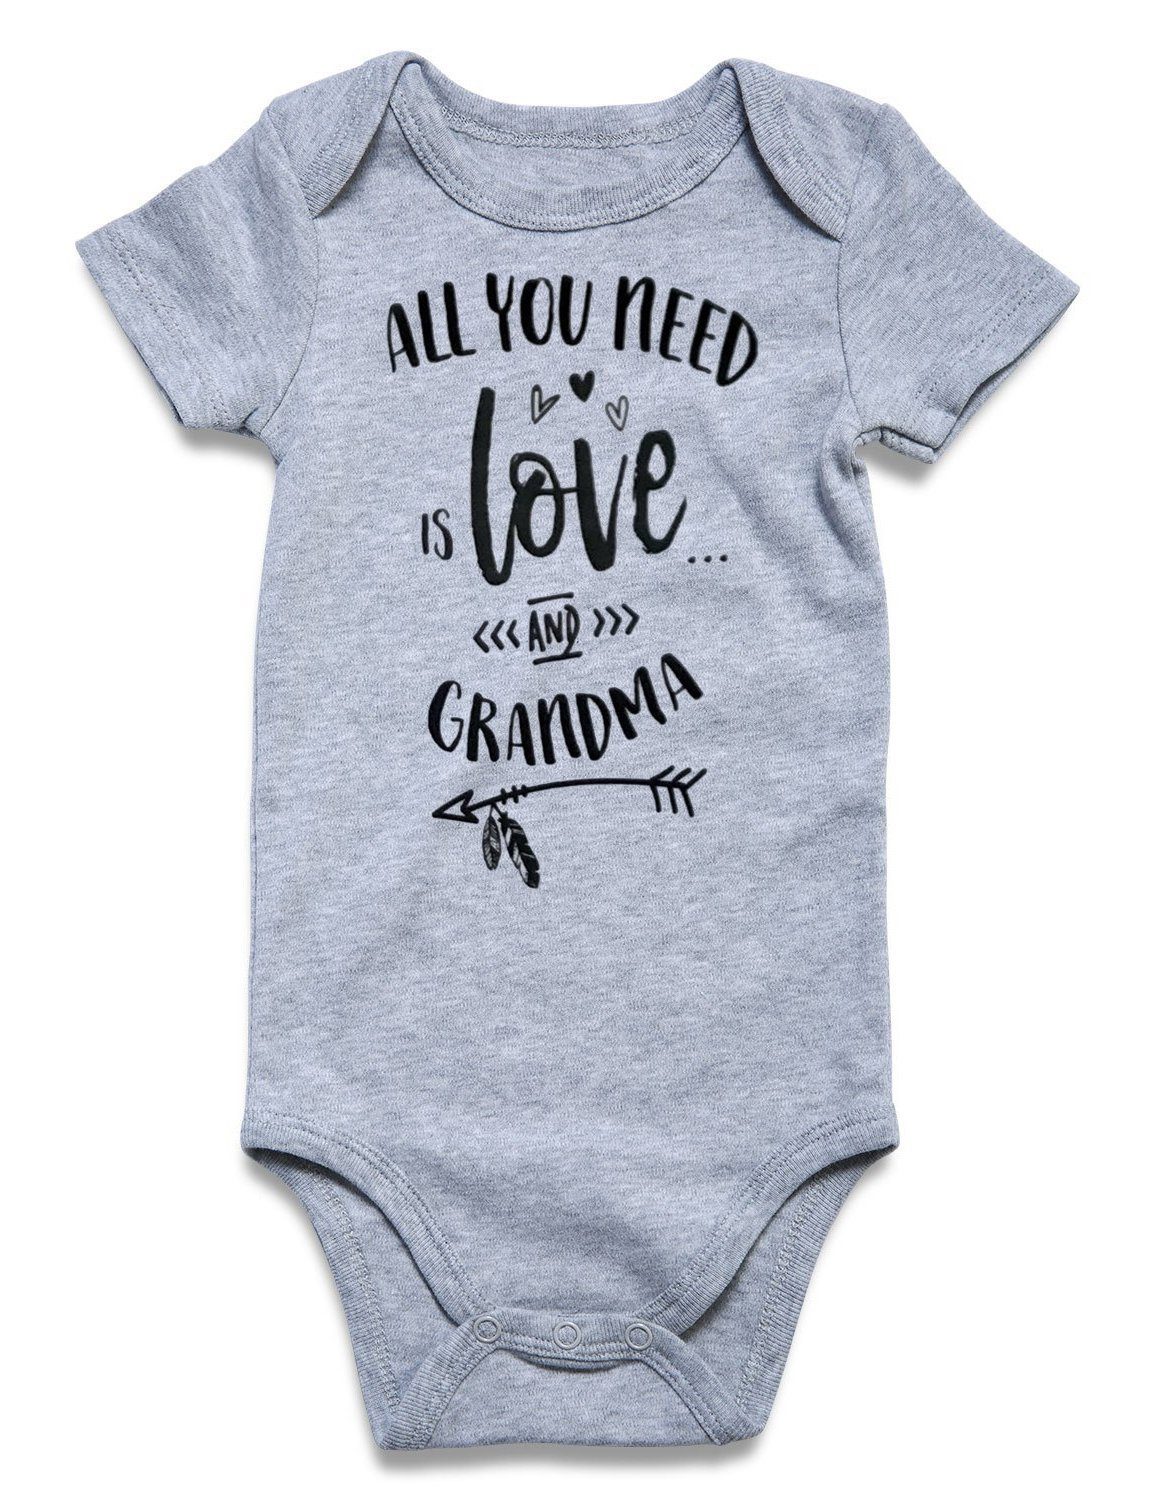 BFUSTYLE All You Need is Love and Grandma Print Cute Short-Sleeve Bodysuit Red White Stripe Coral Outfits for Baby Girls Shower Gift Jumpsuit Shorts Sleepwear 1-2 T (Love and Grandma, 6-12 Month)